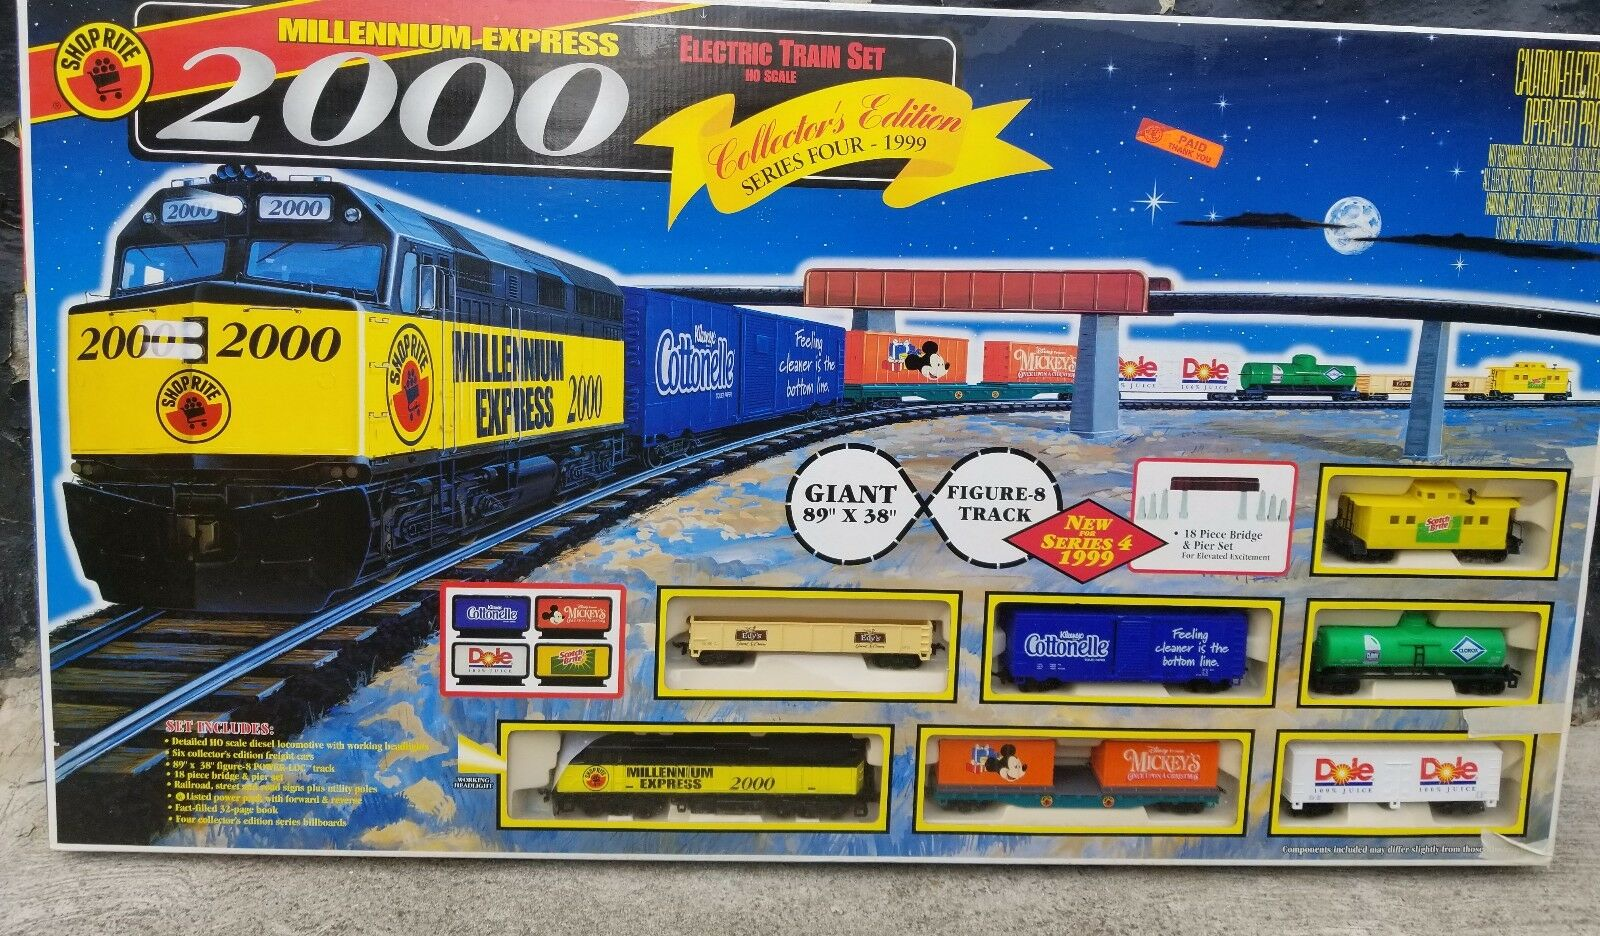 ELECTRIC TRAIN SET HO SCALE SHOP RITE MILLENNIUM EXPRESS 2000 COLLECTOR'S EDT